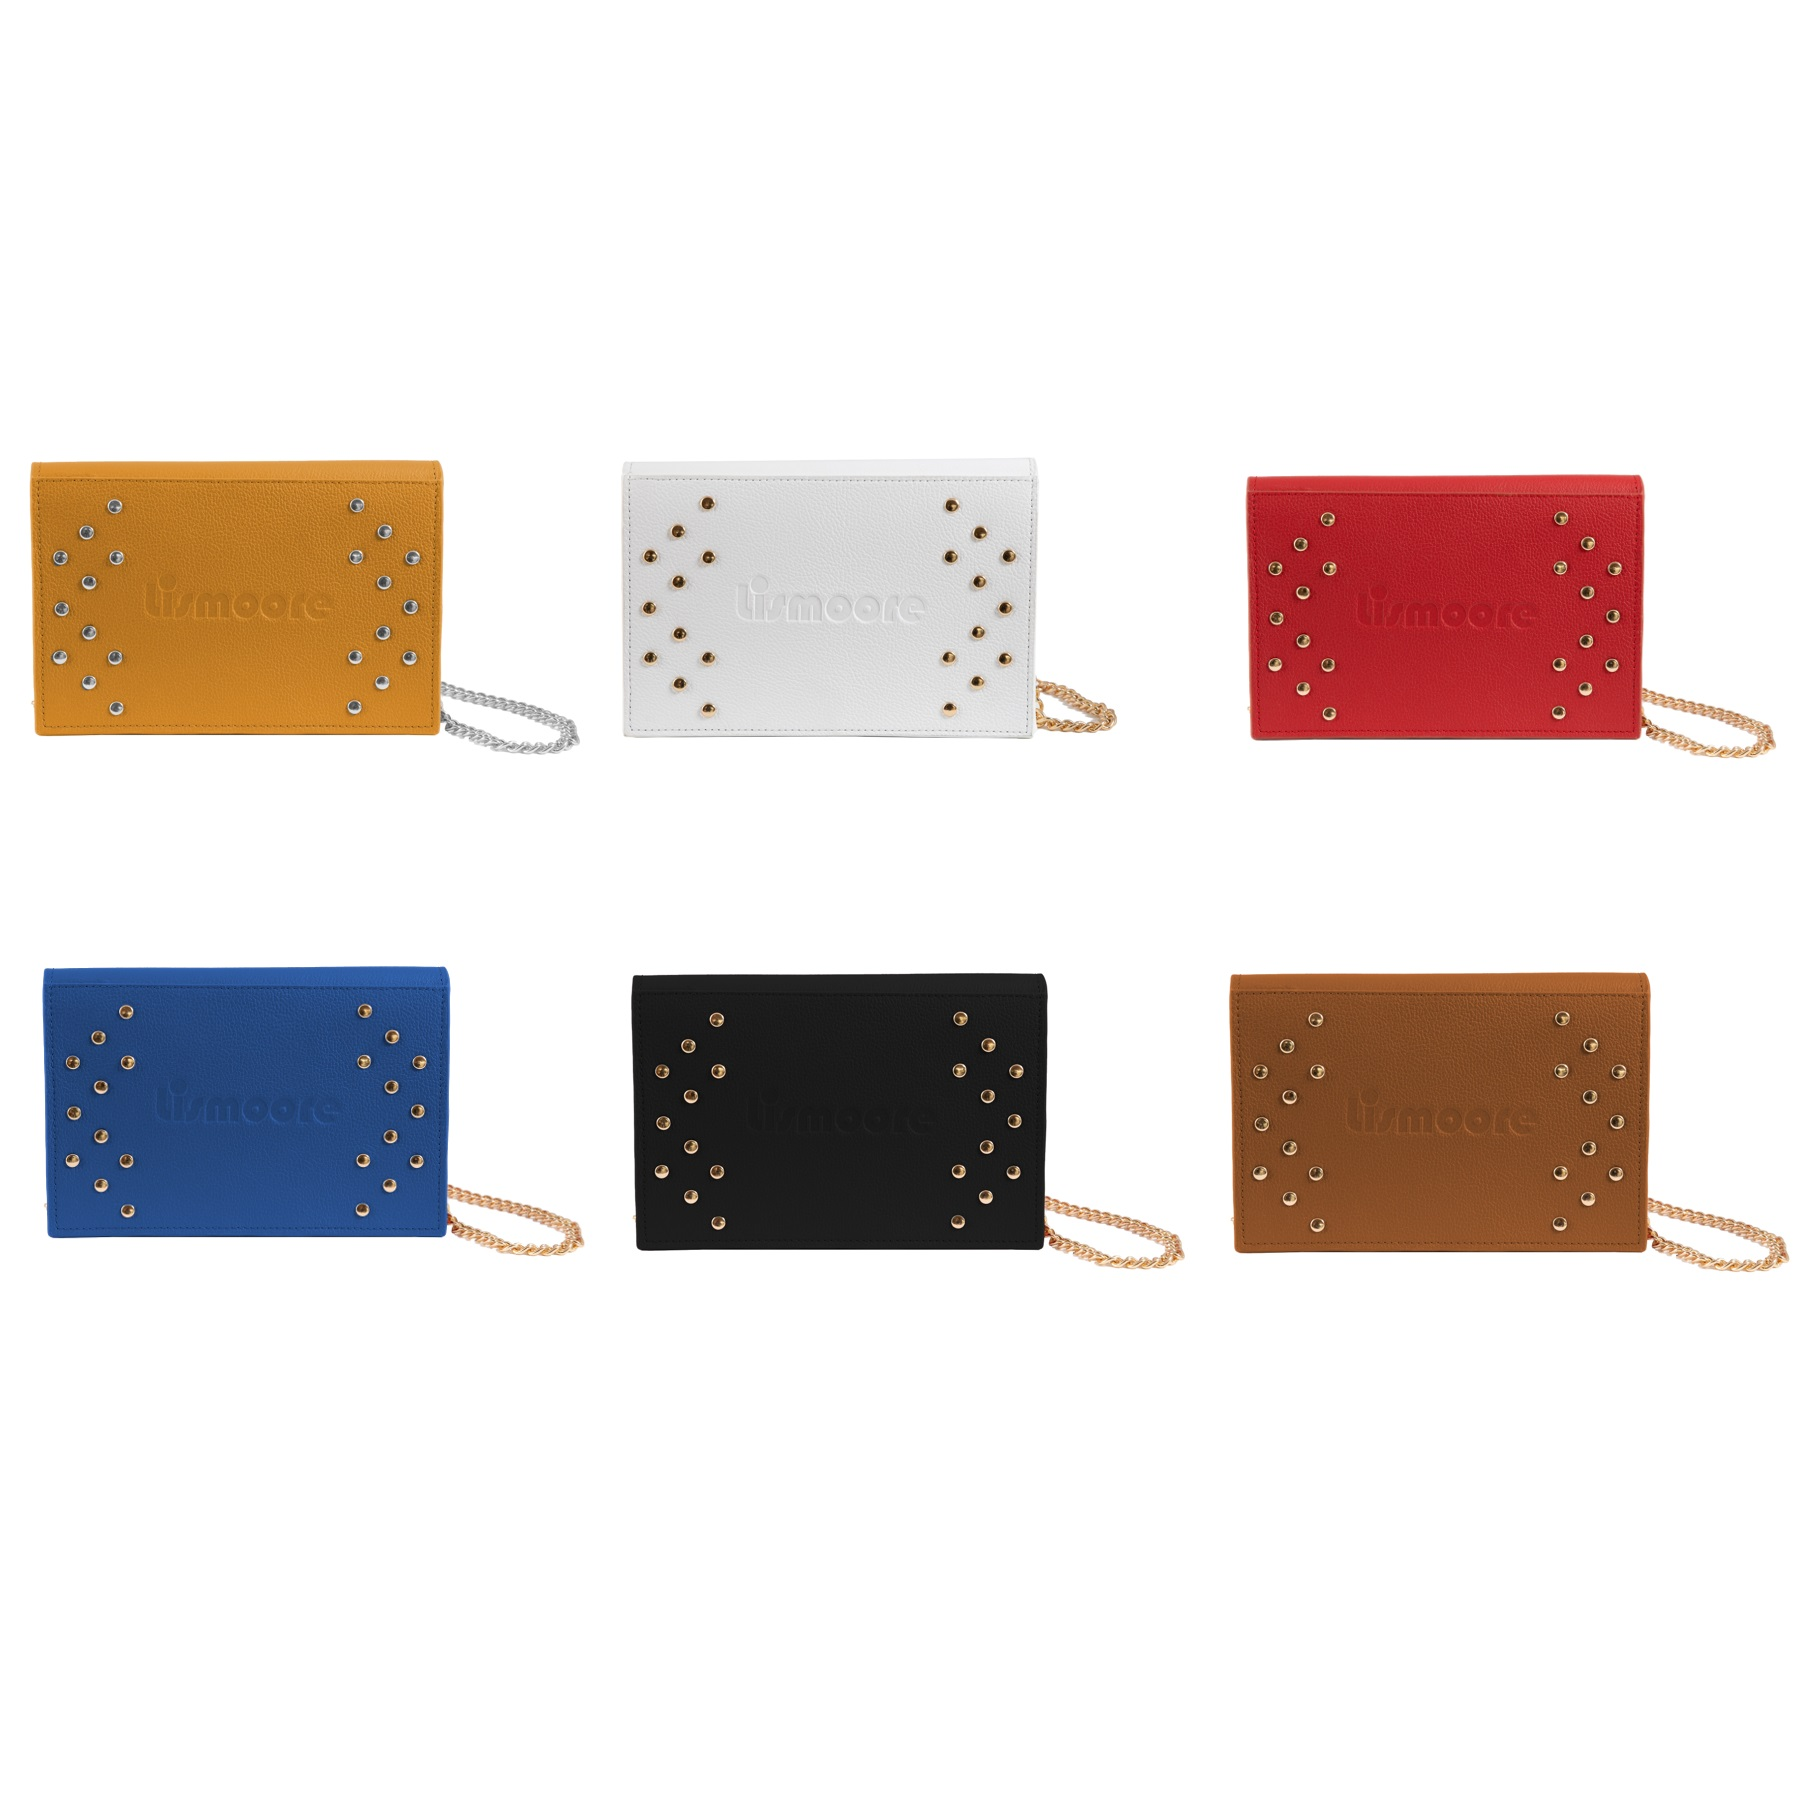 Stami in six leather colors